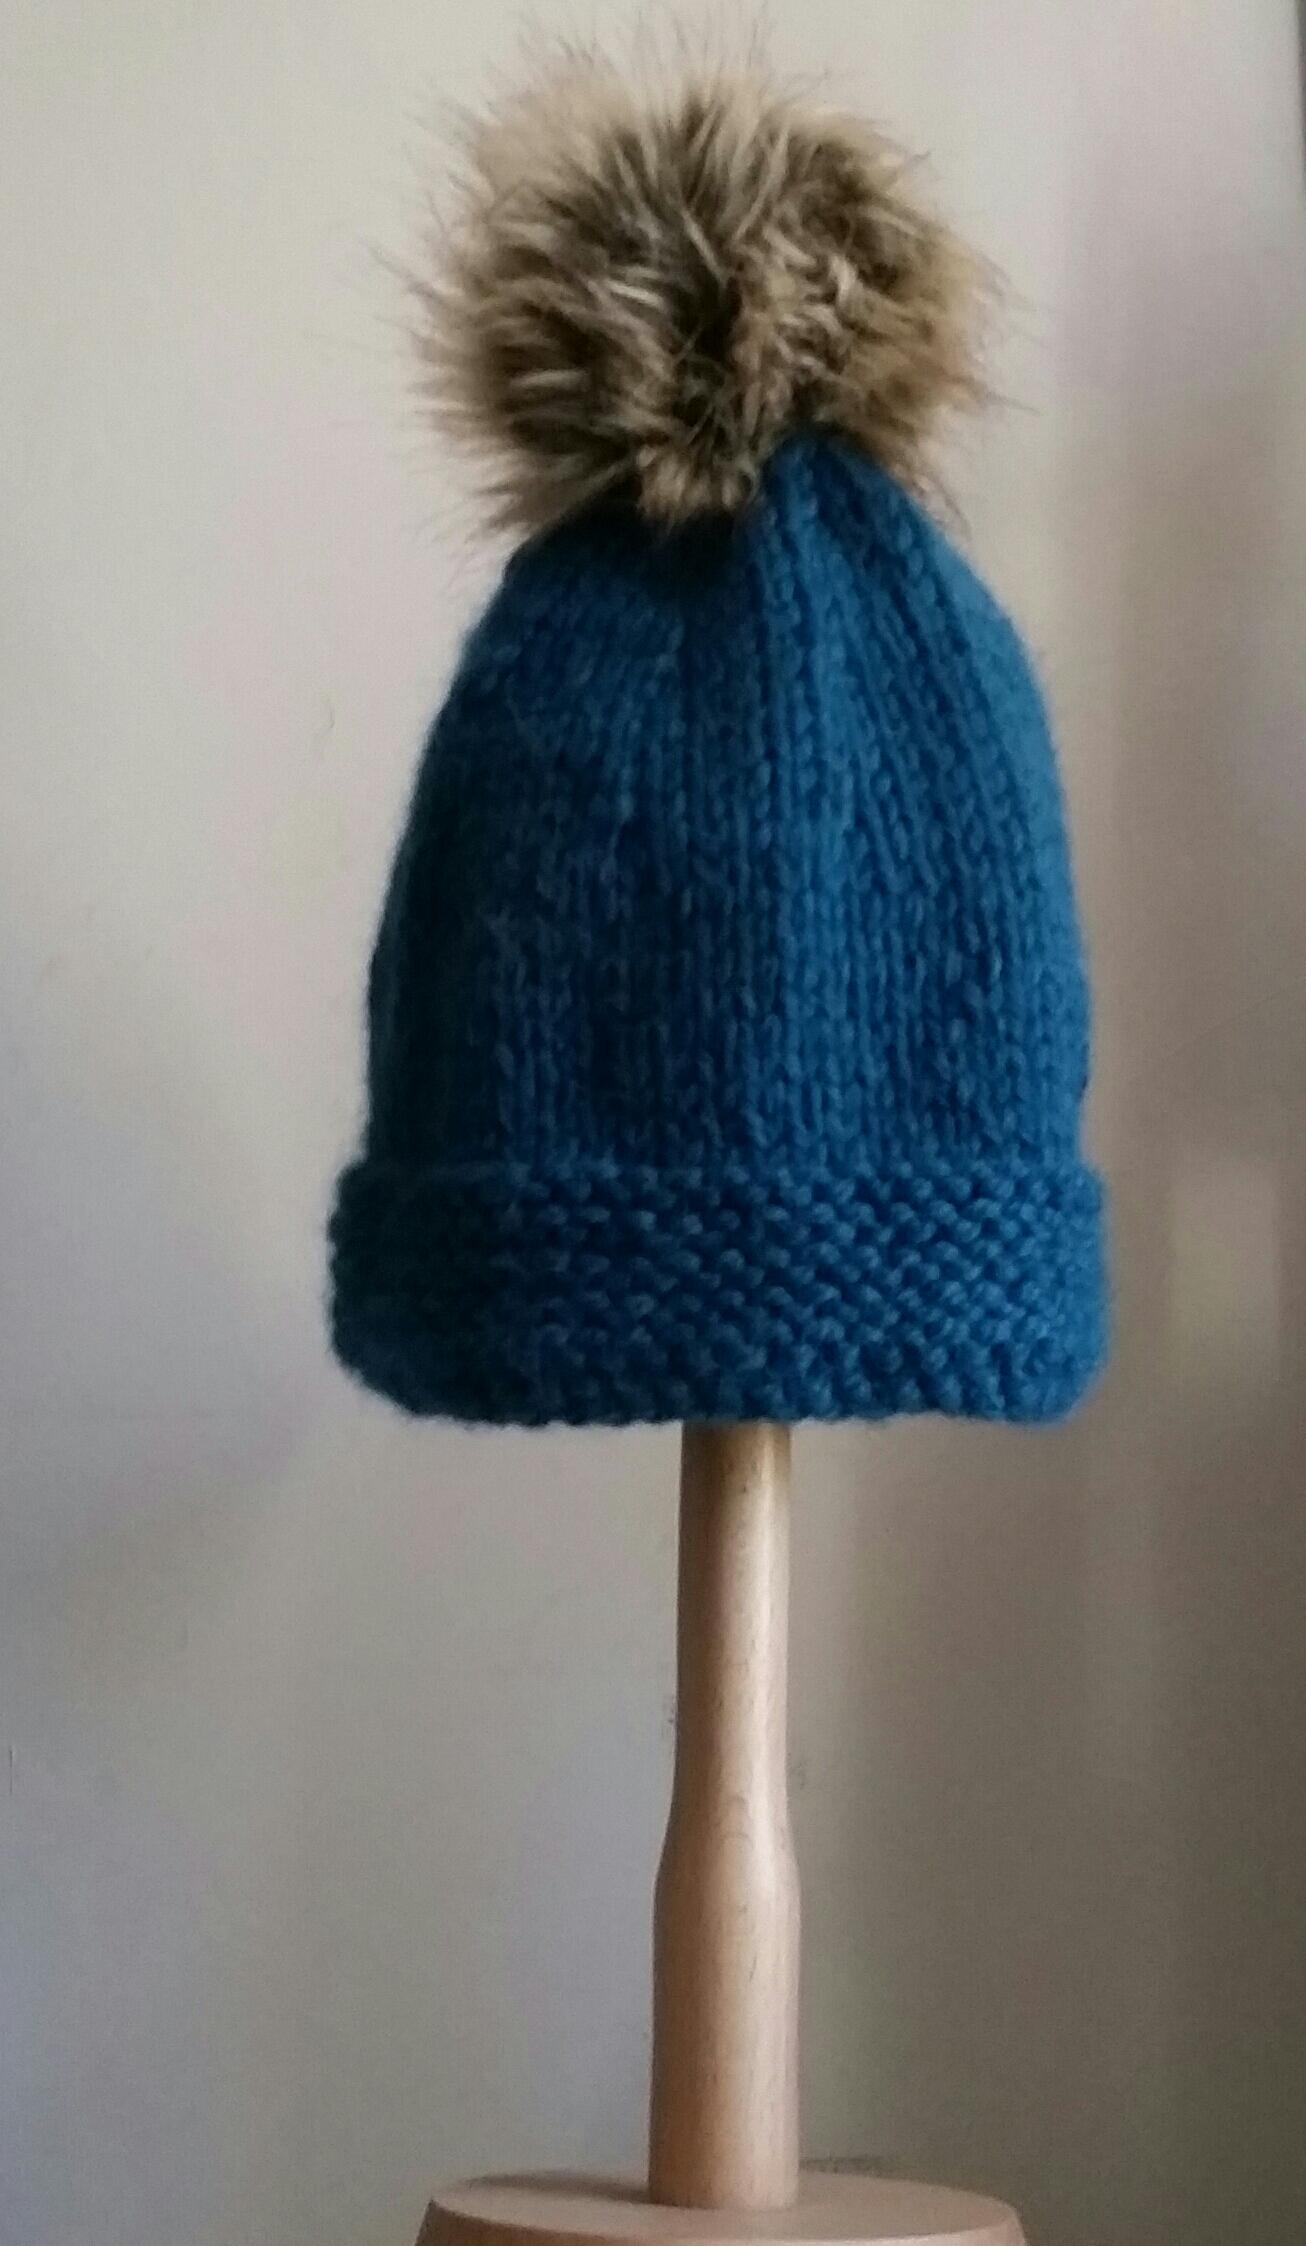 Beginner Bobble Hat Knitting Pattern : Beginners Learn Knitting Kit - Faux Fur Bobble Hat